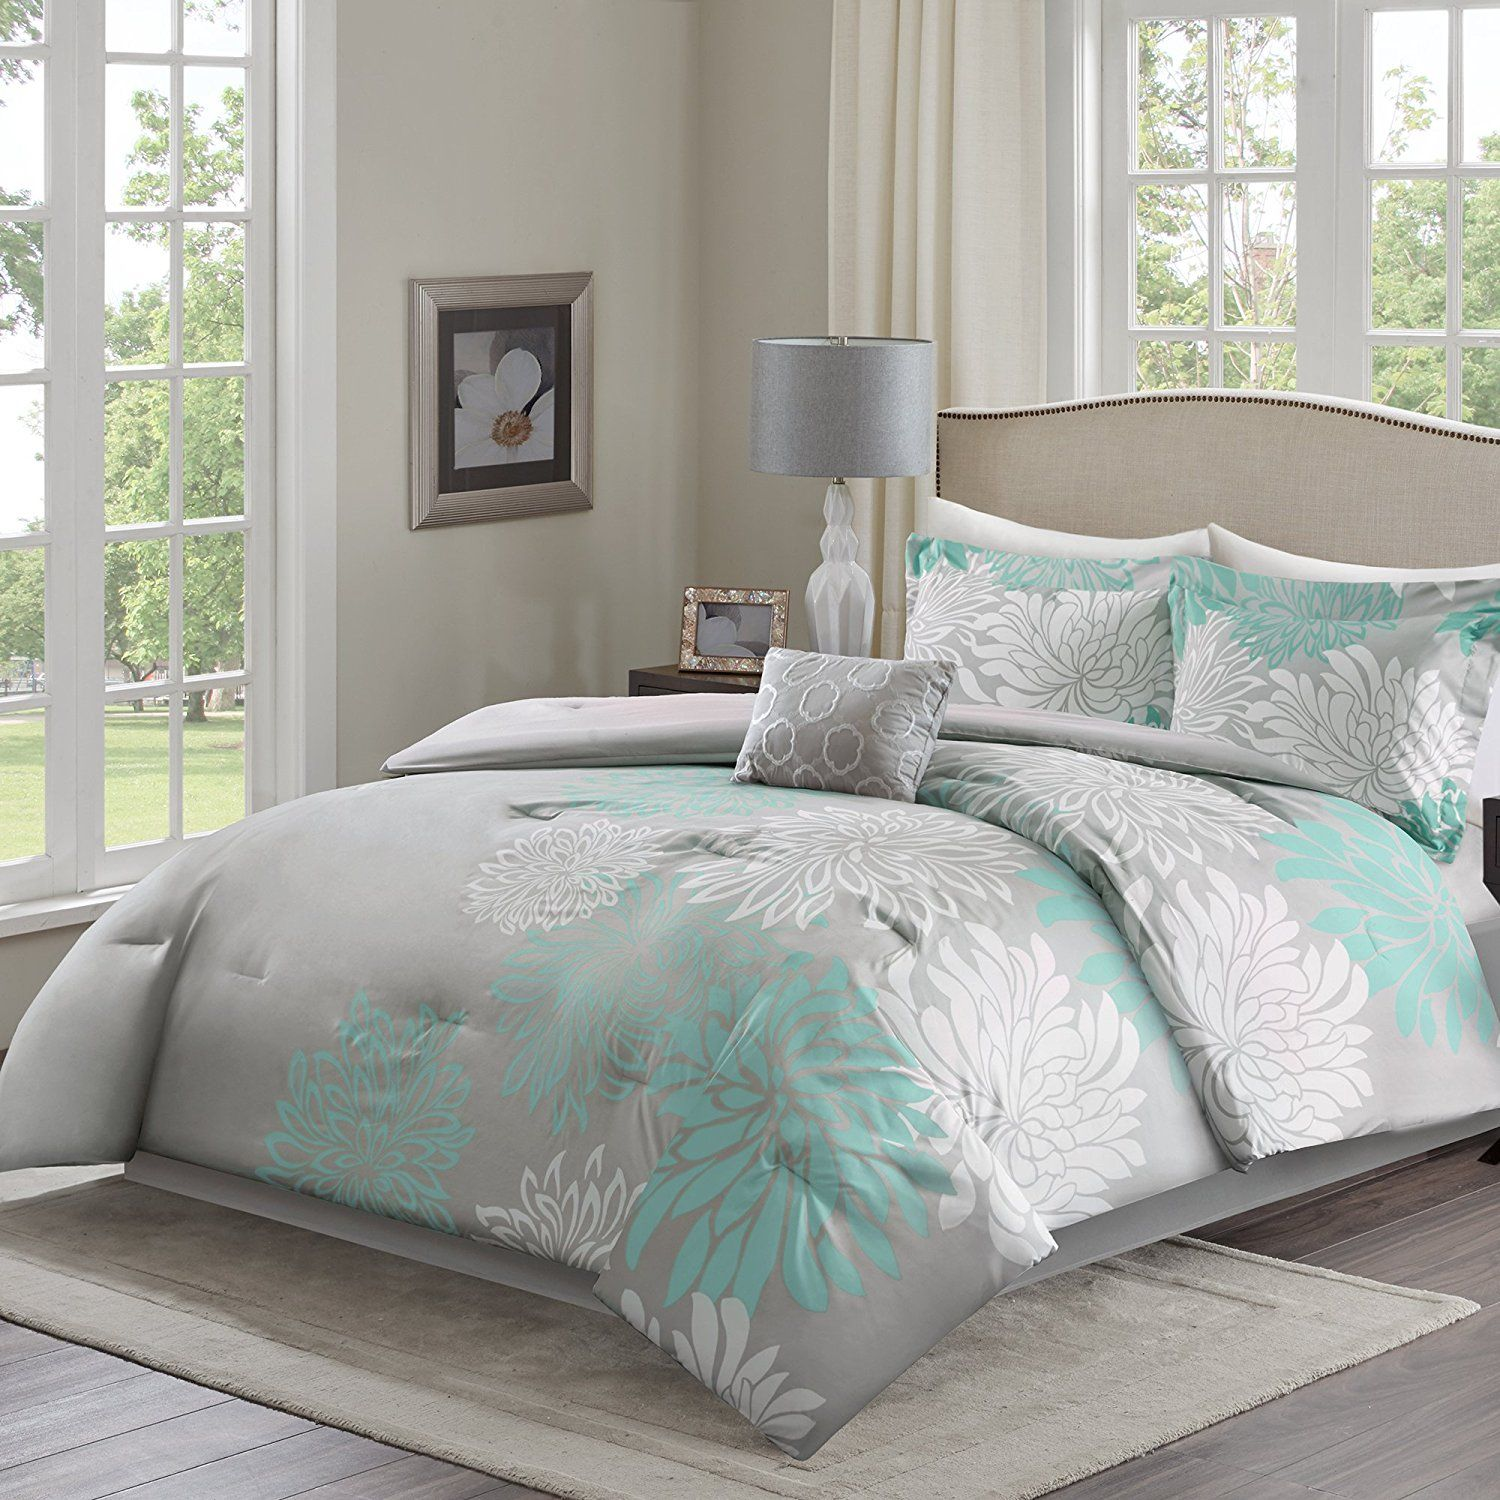 Comforter Sets Comforter Sets Bed Linens Luxury Bed Linen Design